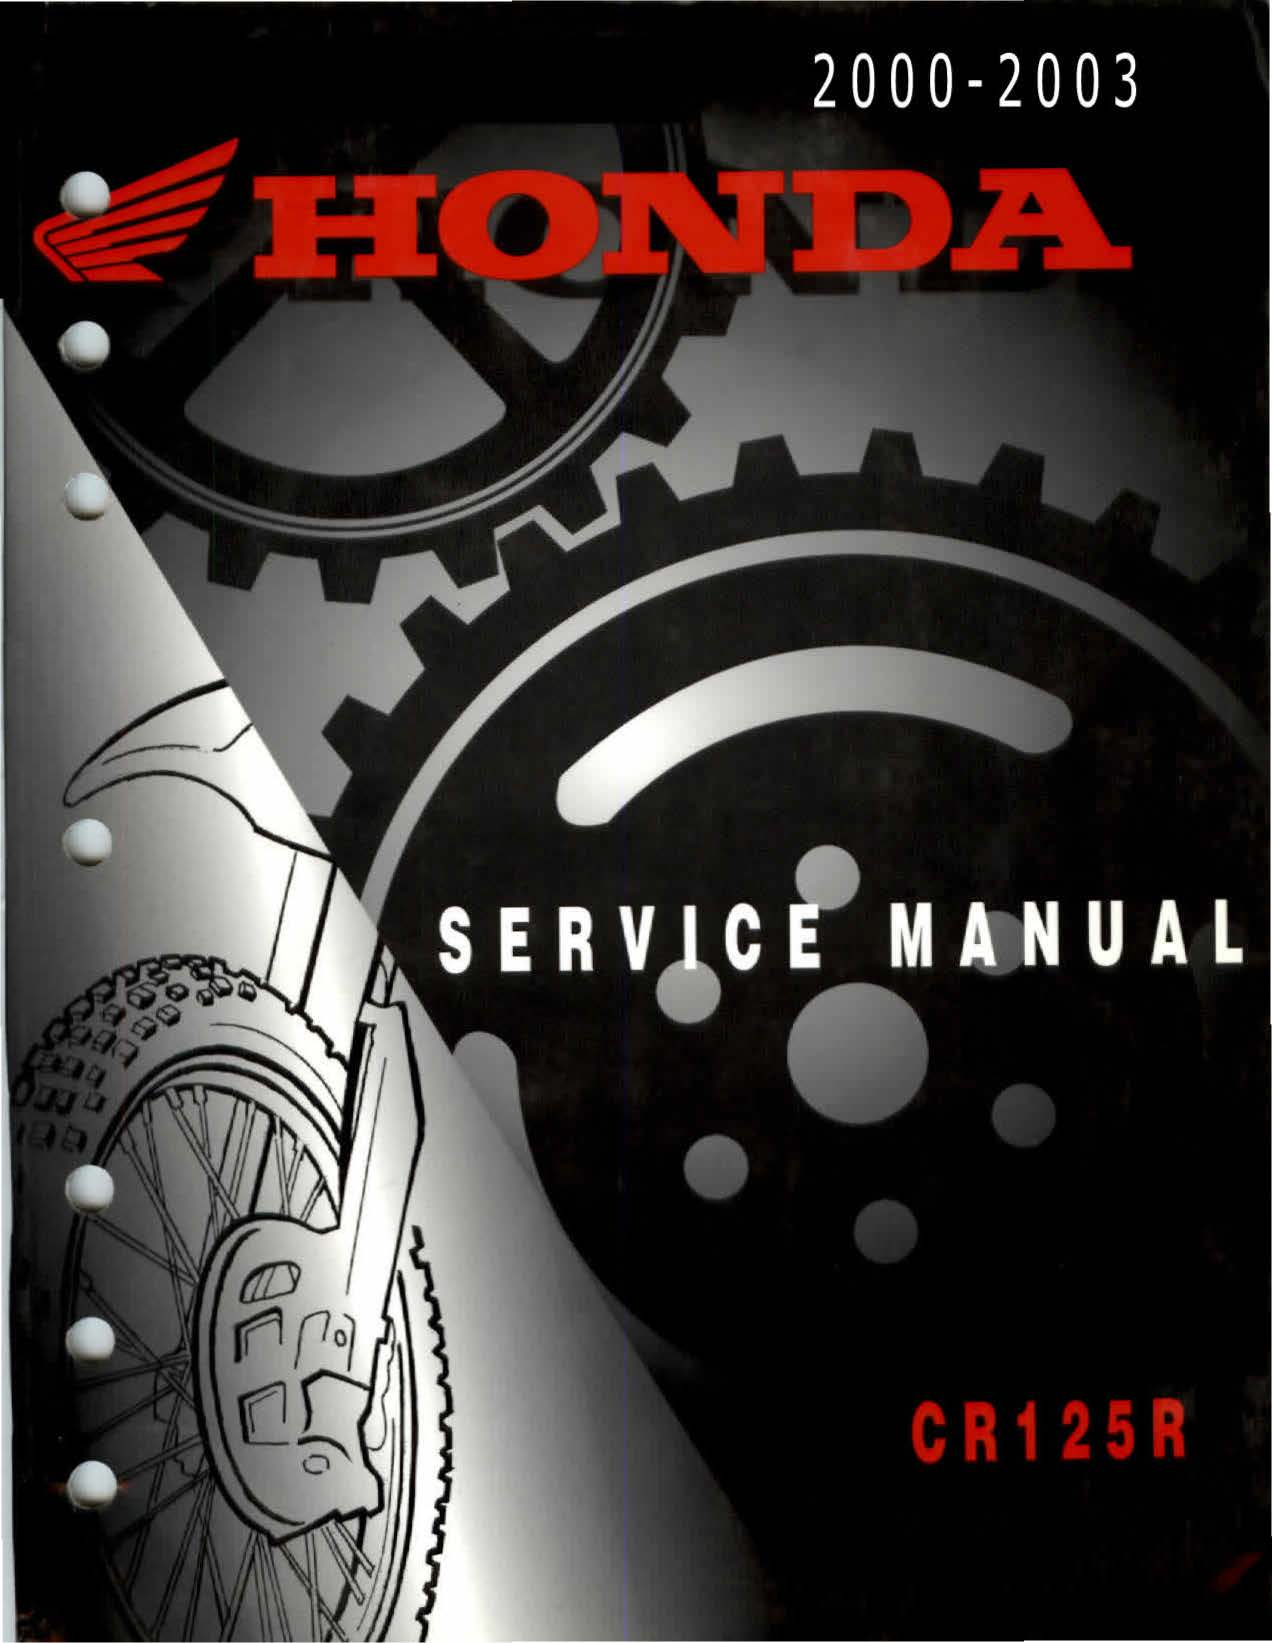 Workshop manual for Honda CR125R (2000-2003)